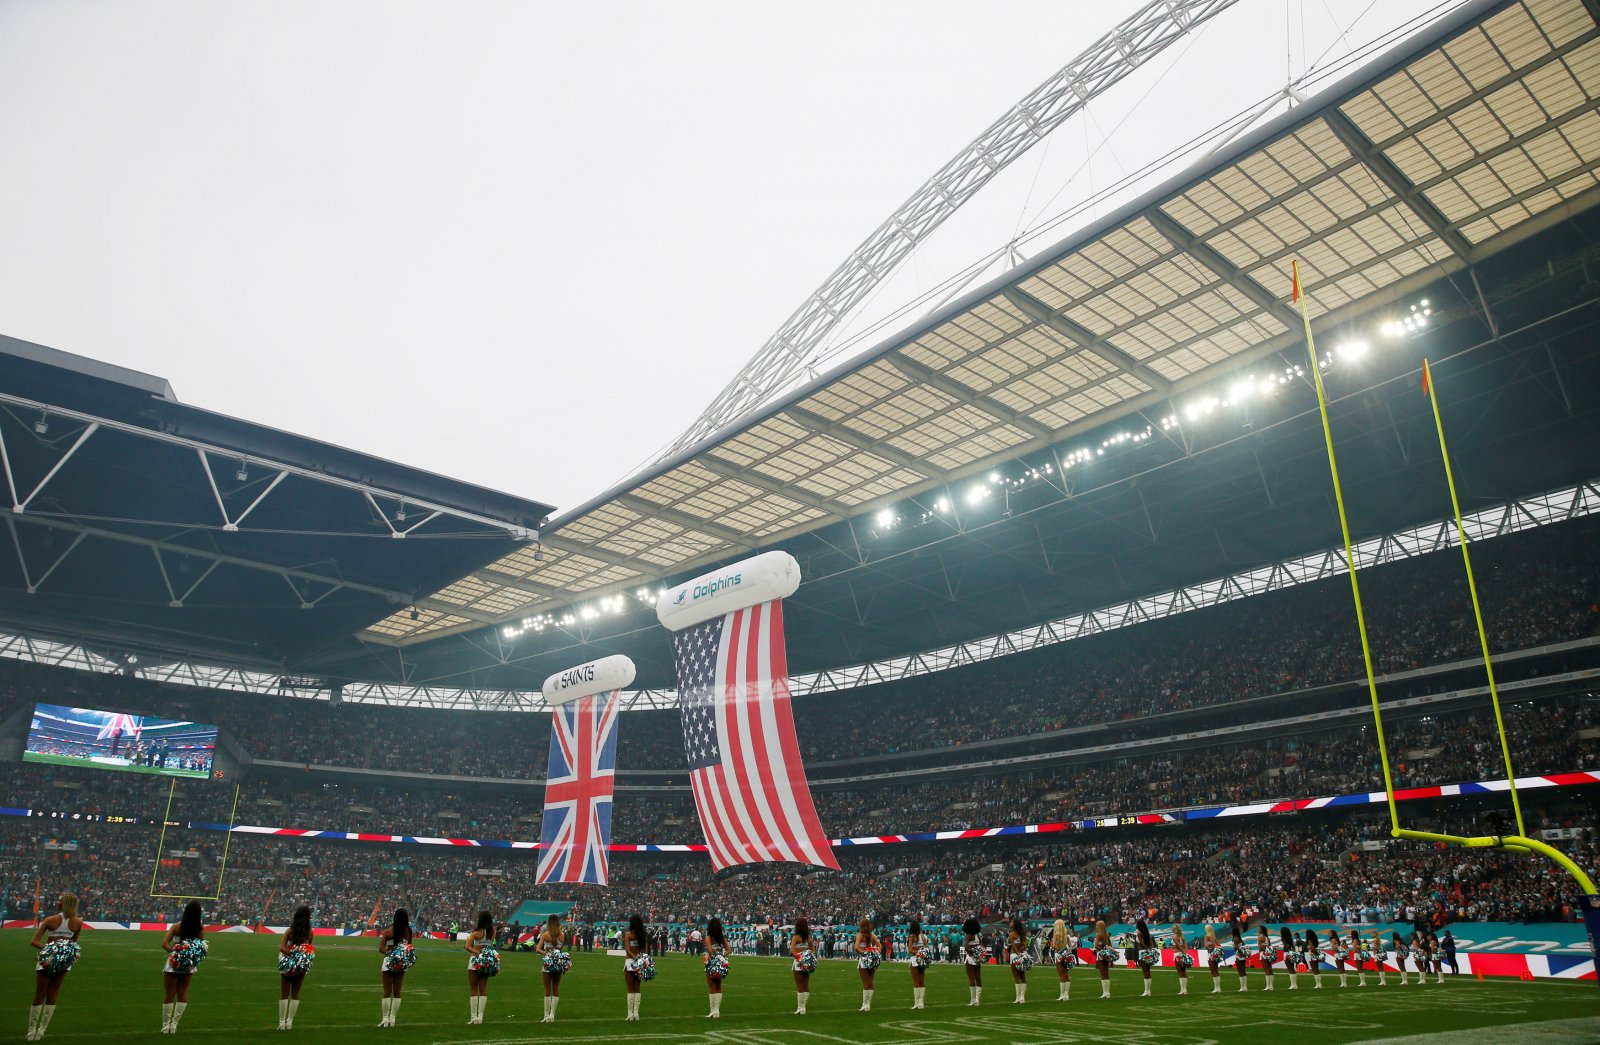 UK and US flags at Wembley for NFL game